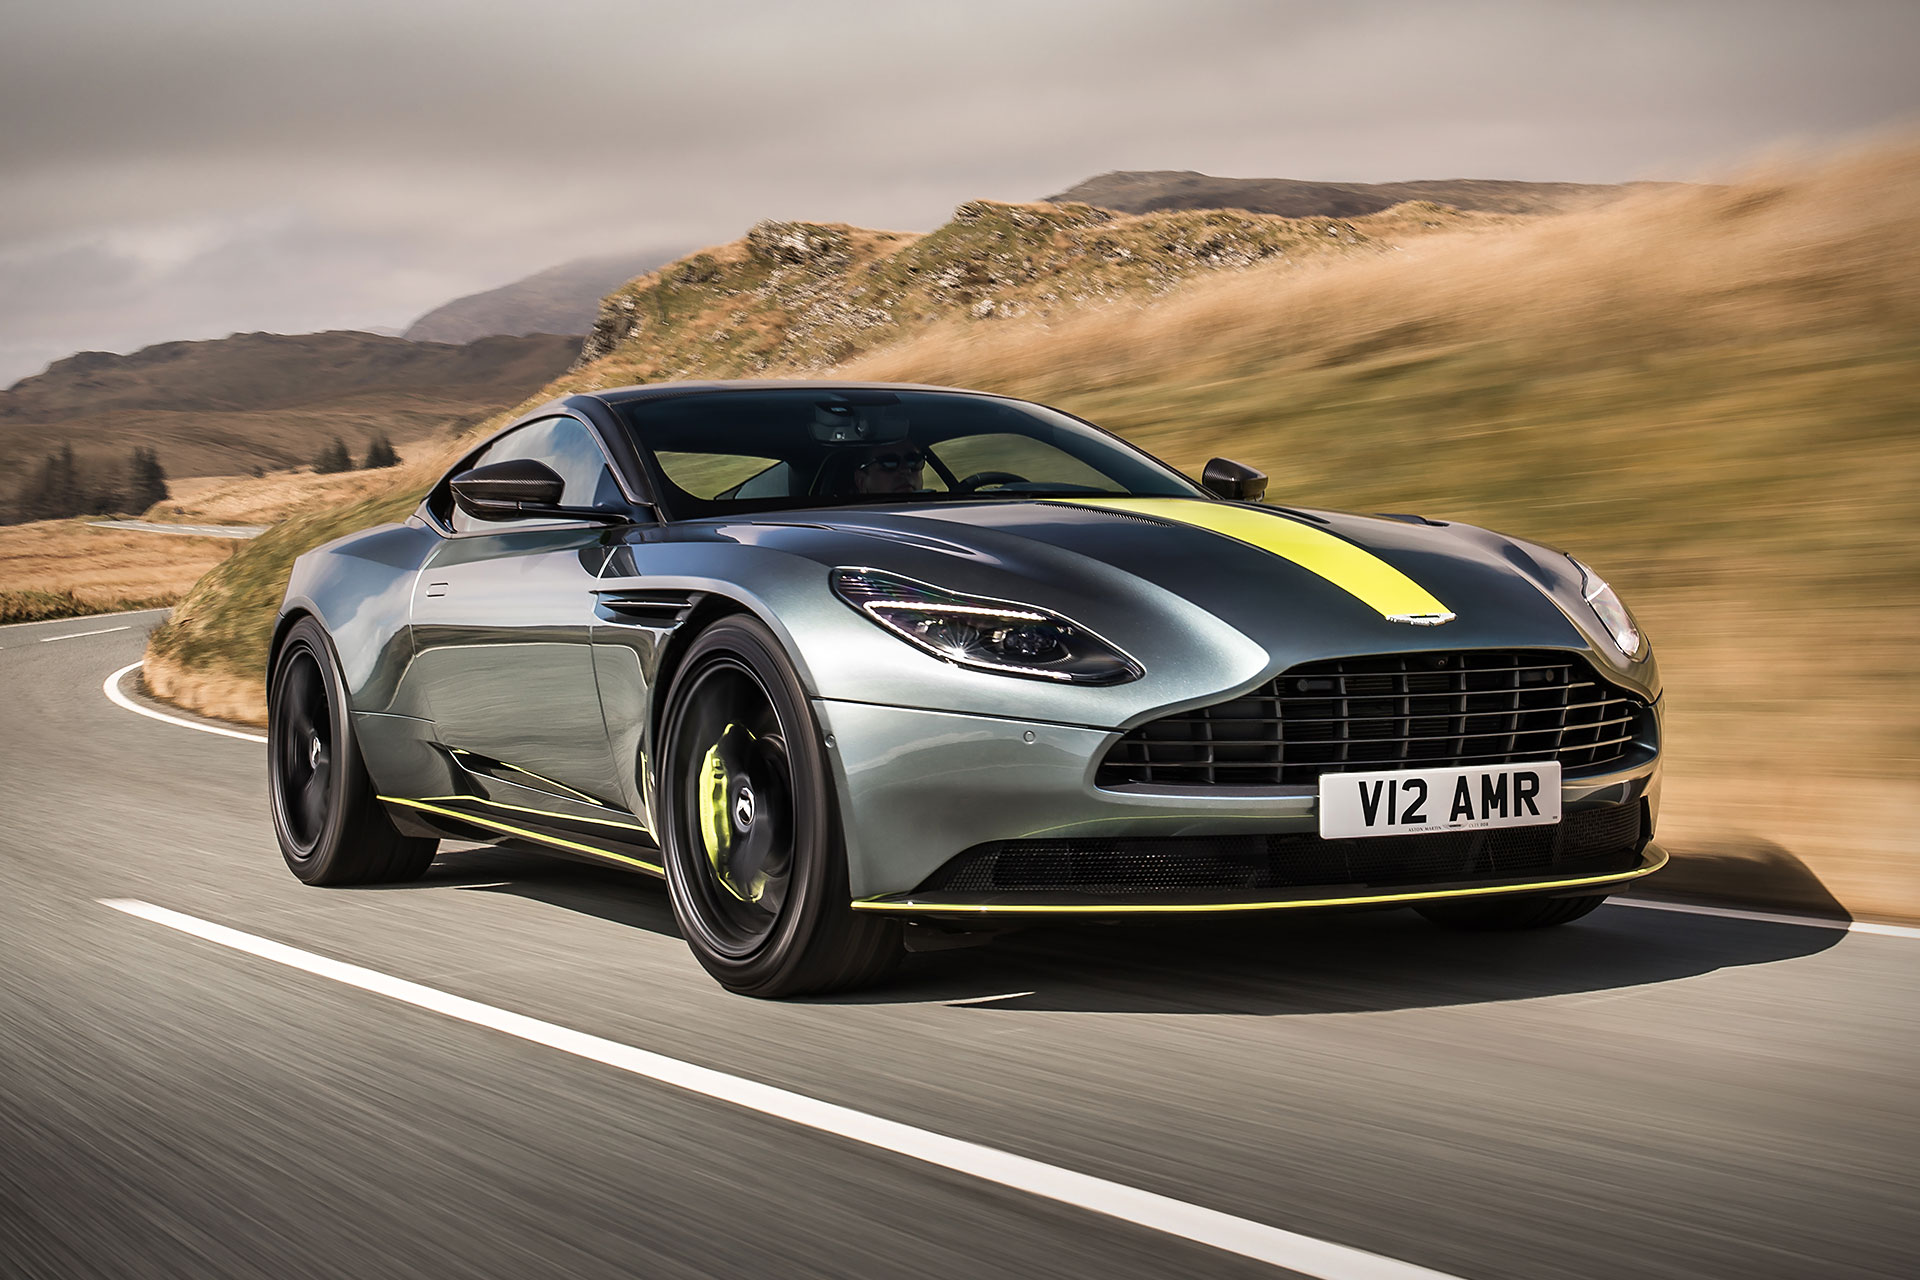 aston martin db11 amr coupe | uncrate